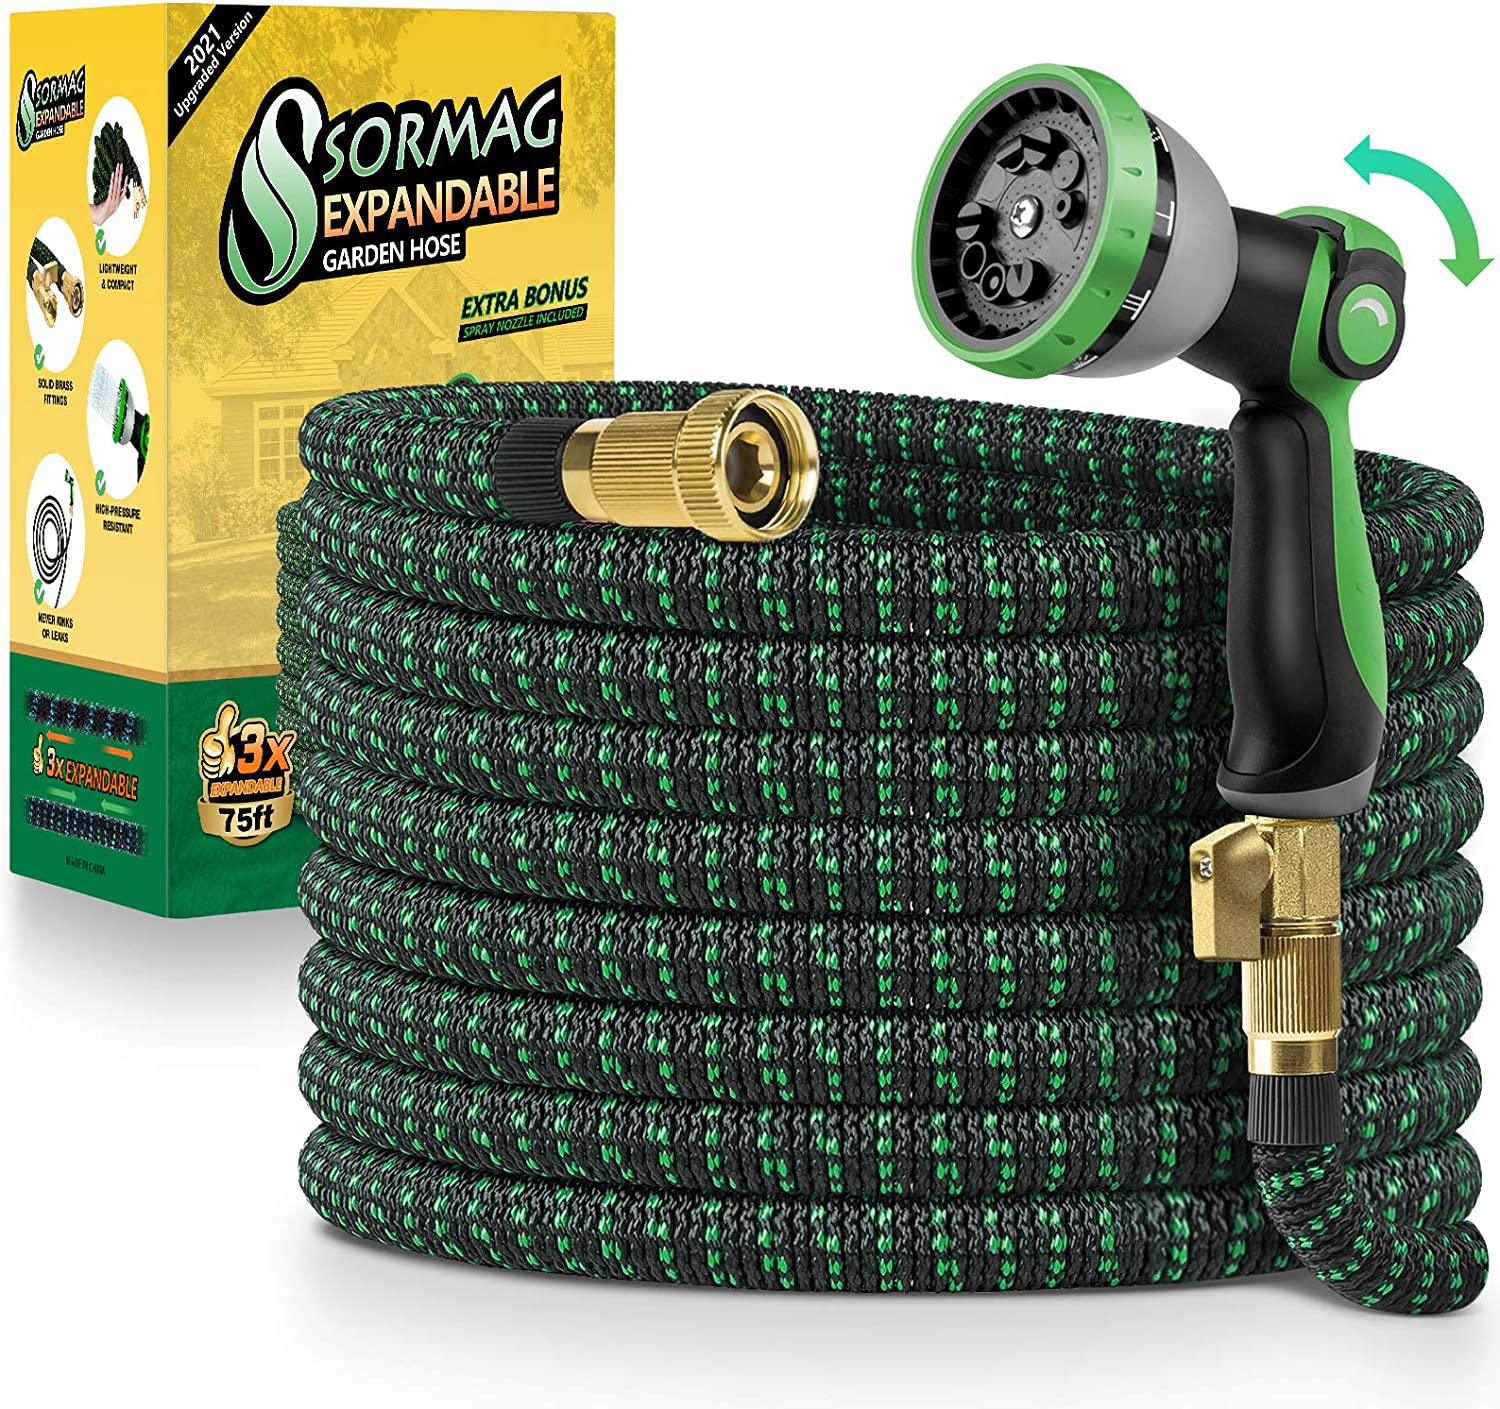 SORMAG Expandable Garden Hose 75ft, Flexible Expanding Water Hose, Leakproof No Kink Lightweight Hoses with 10 Function Nozzle, Durable Collapsible Outdoor Watering Hose for Yard Lawn